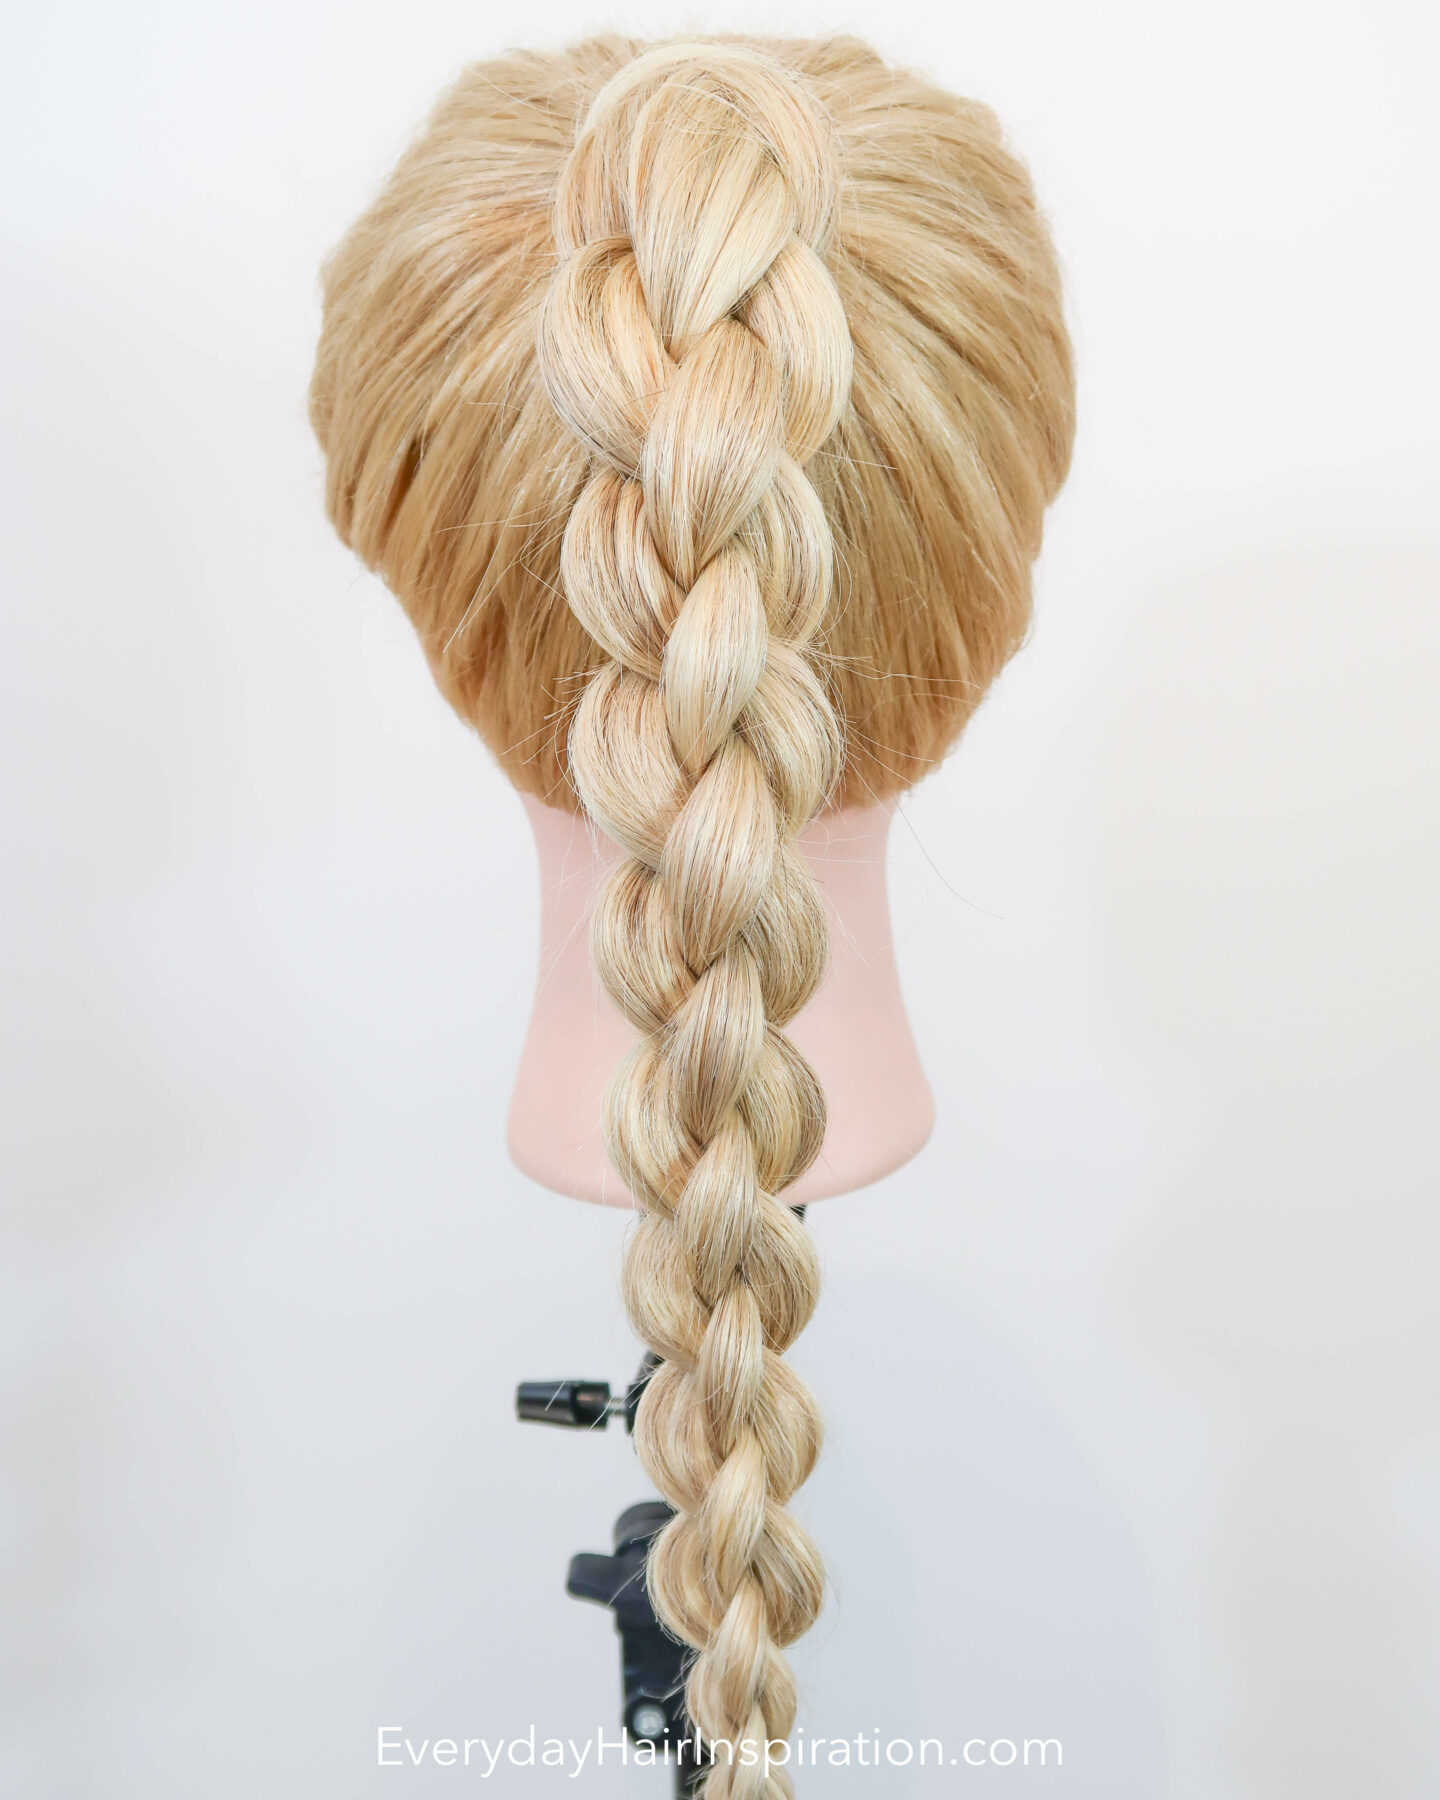 Blonde hairdresser doll seen from the back with a high ponytail with a 4 strand round braid, braided in the hair.